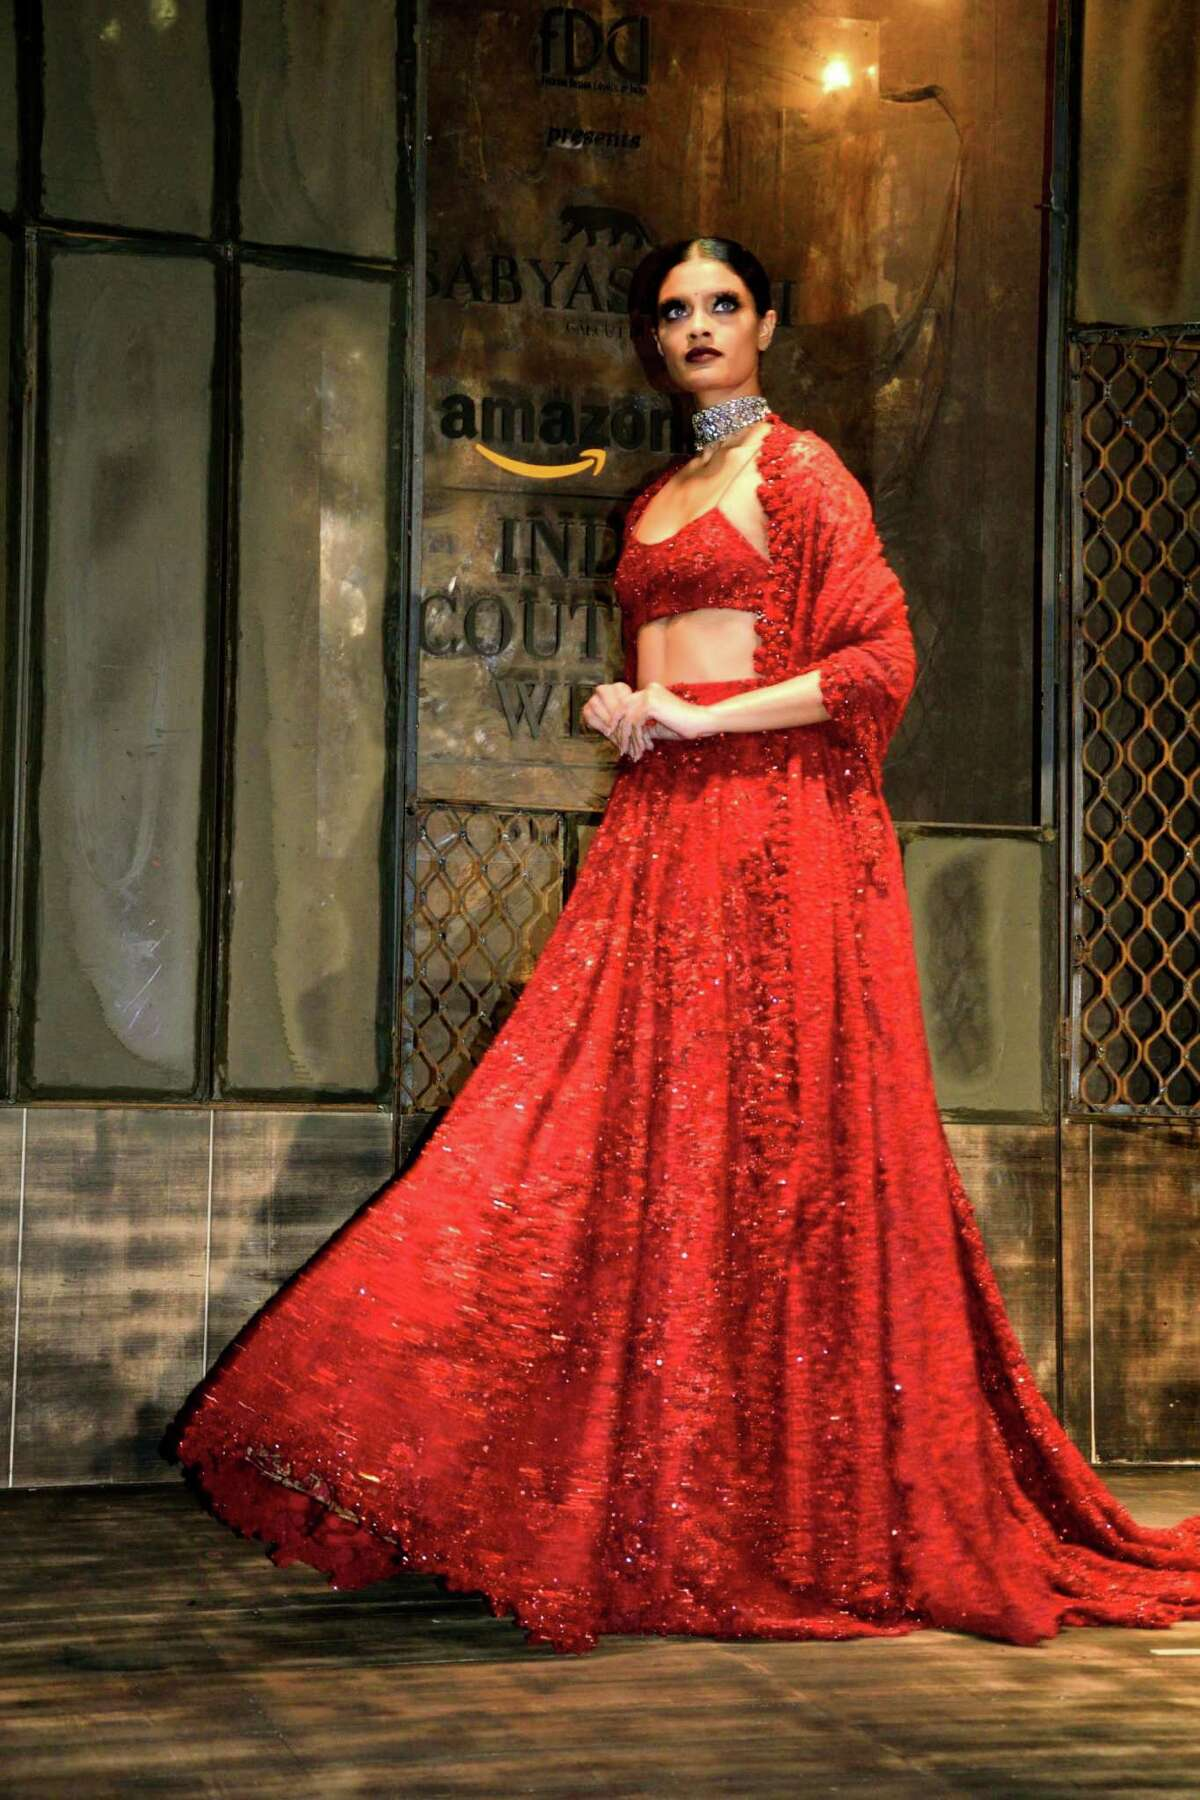 Indian fashion designer and couturier, Sabyasachi, opened the Fashion Design Council of India's (FDCI) Amazon India Couture Week 2015 in his quintessentially royal style with an artistic collaboration of flaming red soles by Lebanese shoe designer, Christian Louboutin, that lent glamour to his shimmering couture line at the Taj Palace Hotel in New Delhi, India.